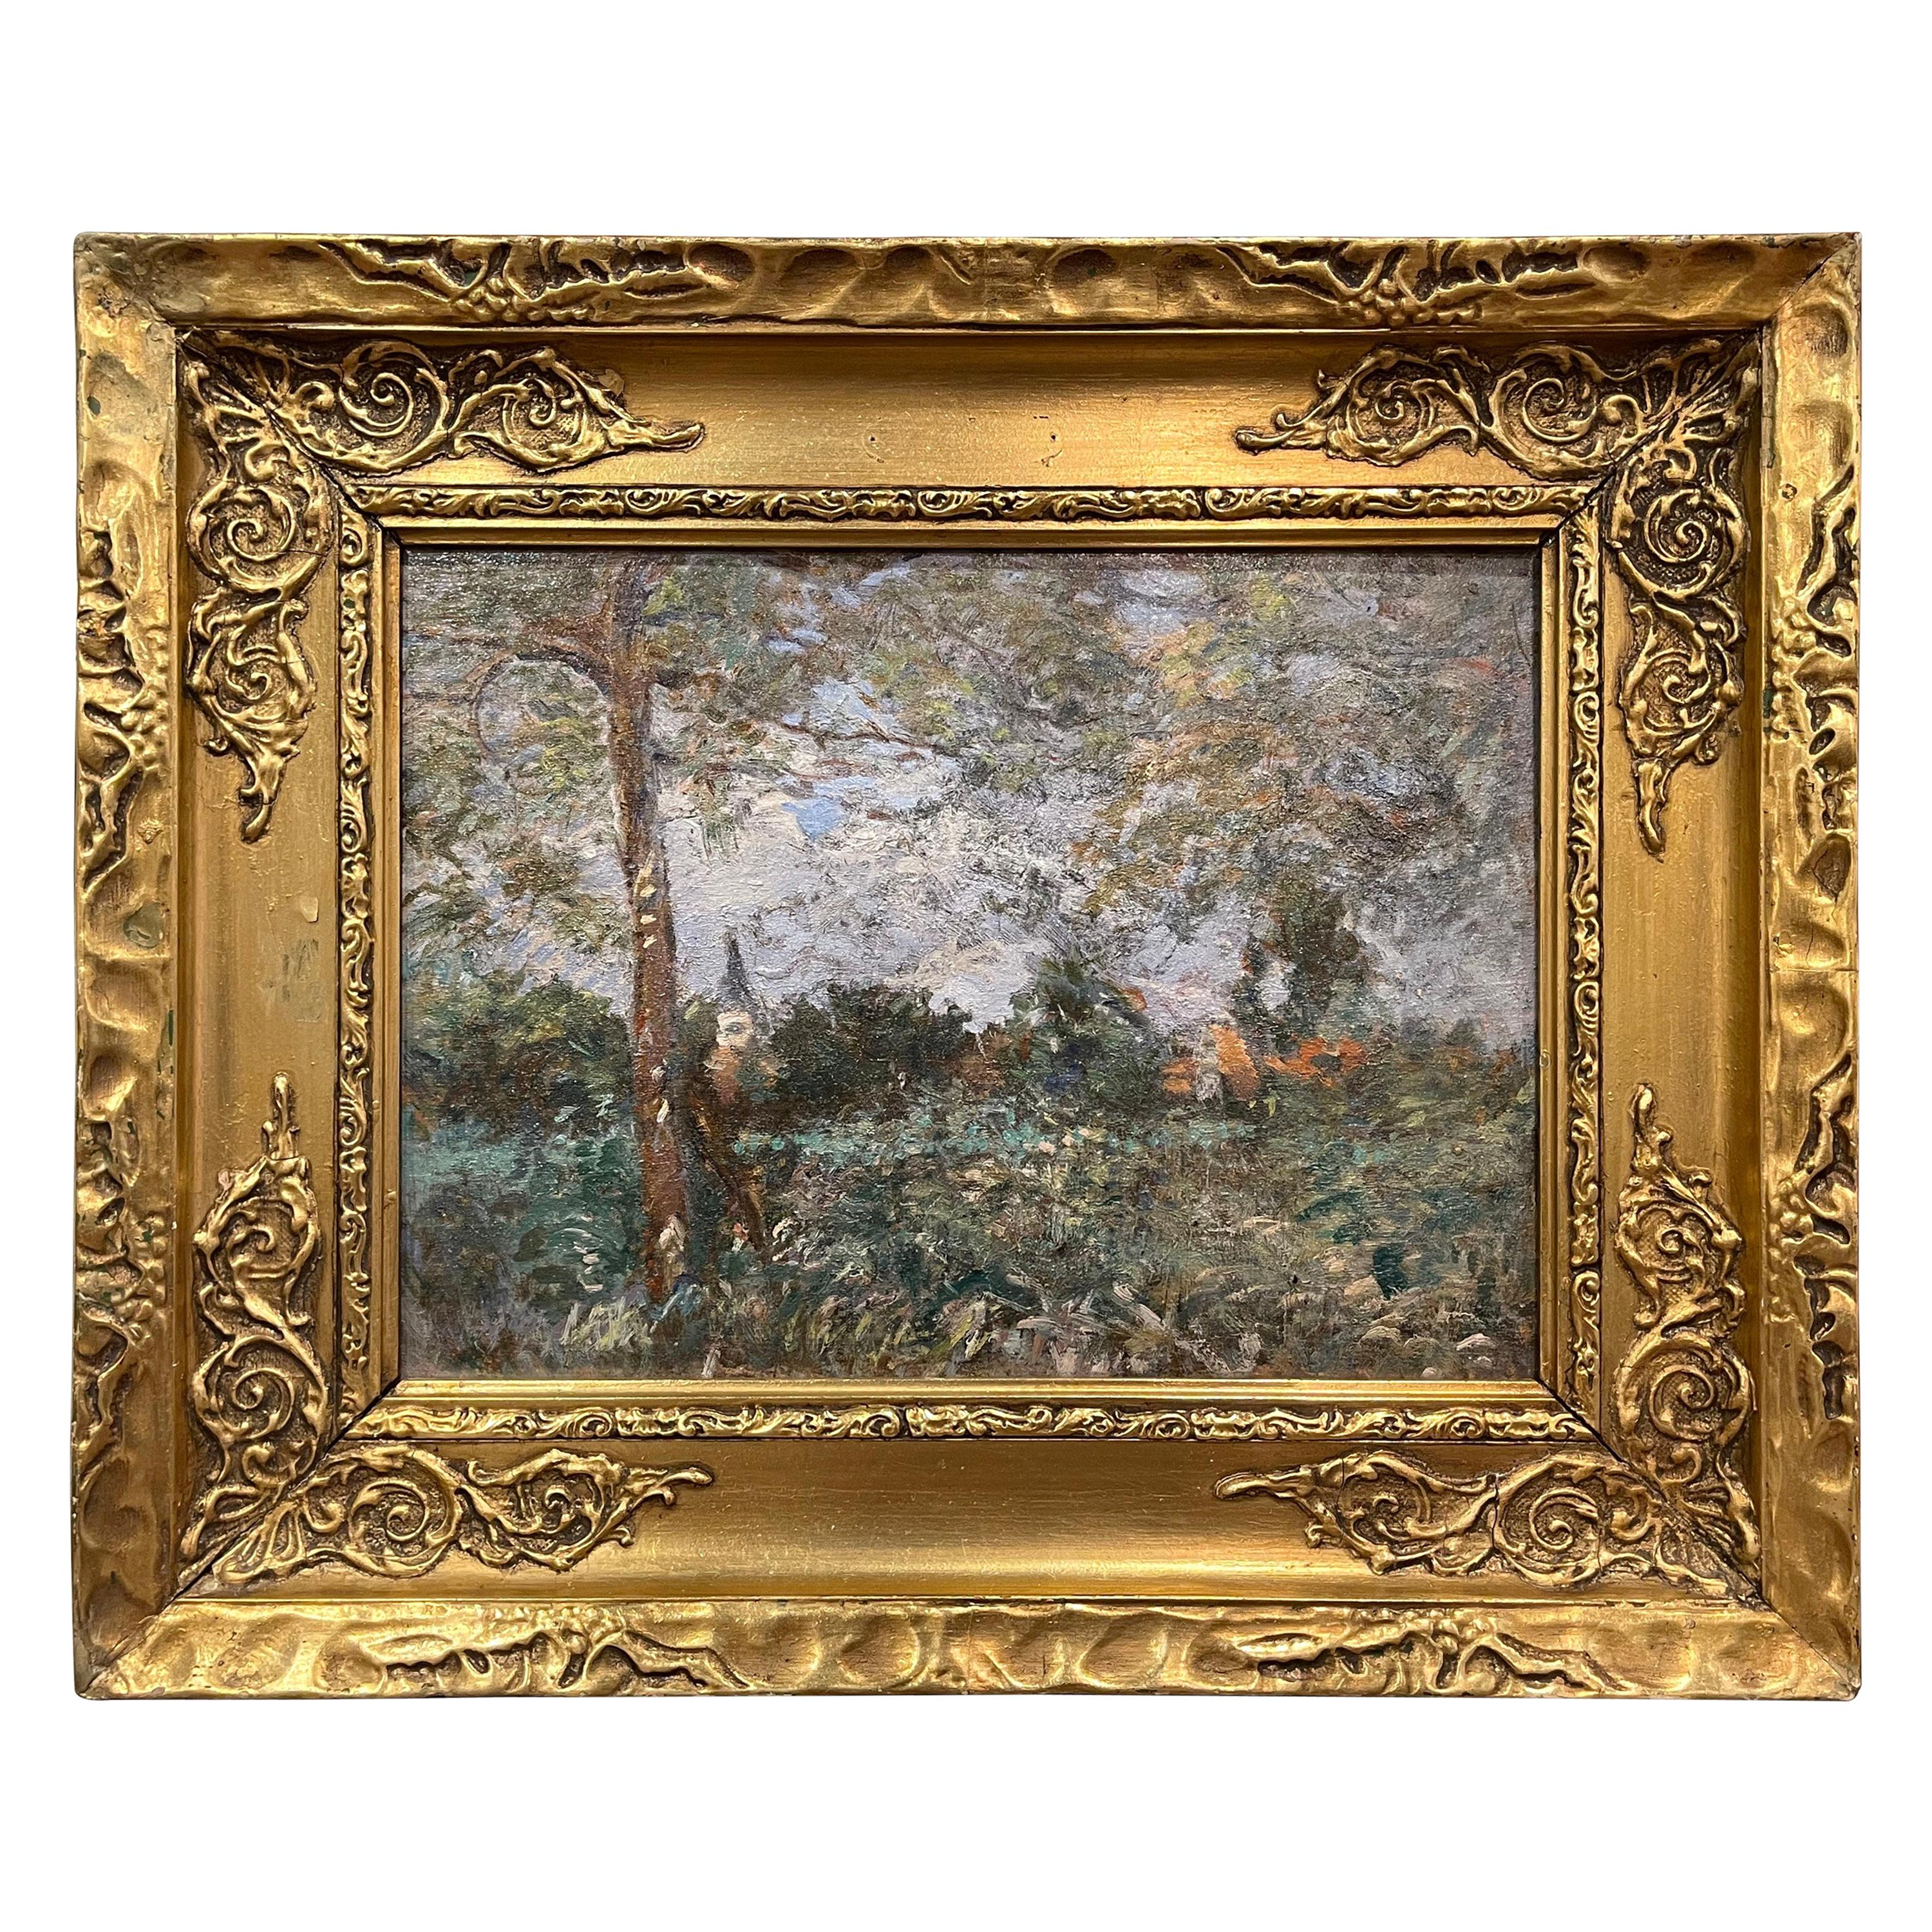 19th Century French Oil on Board Painting Signed H. D. Lemaitre